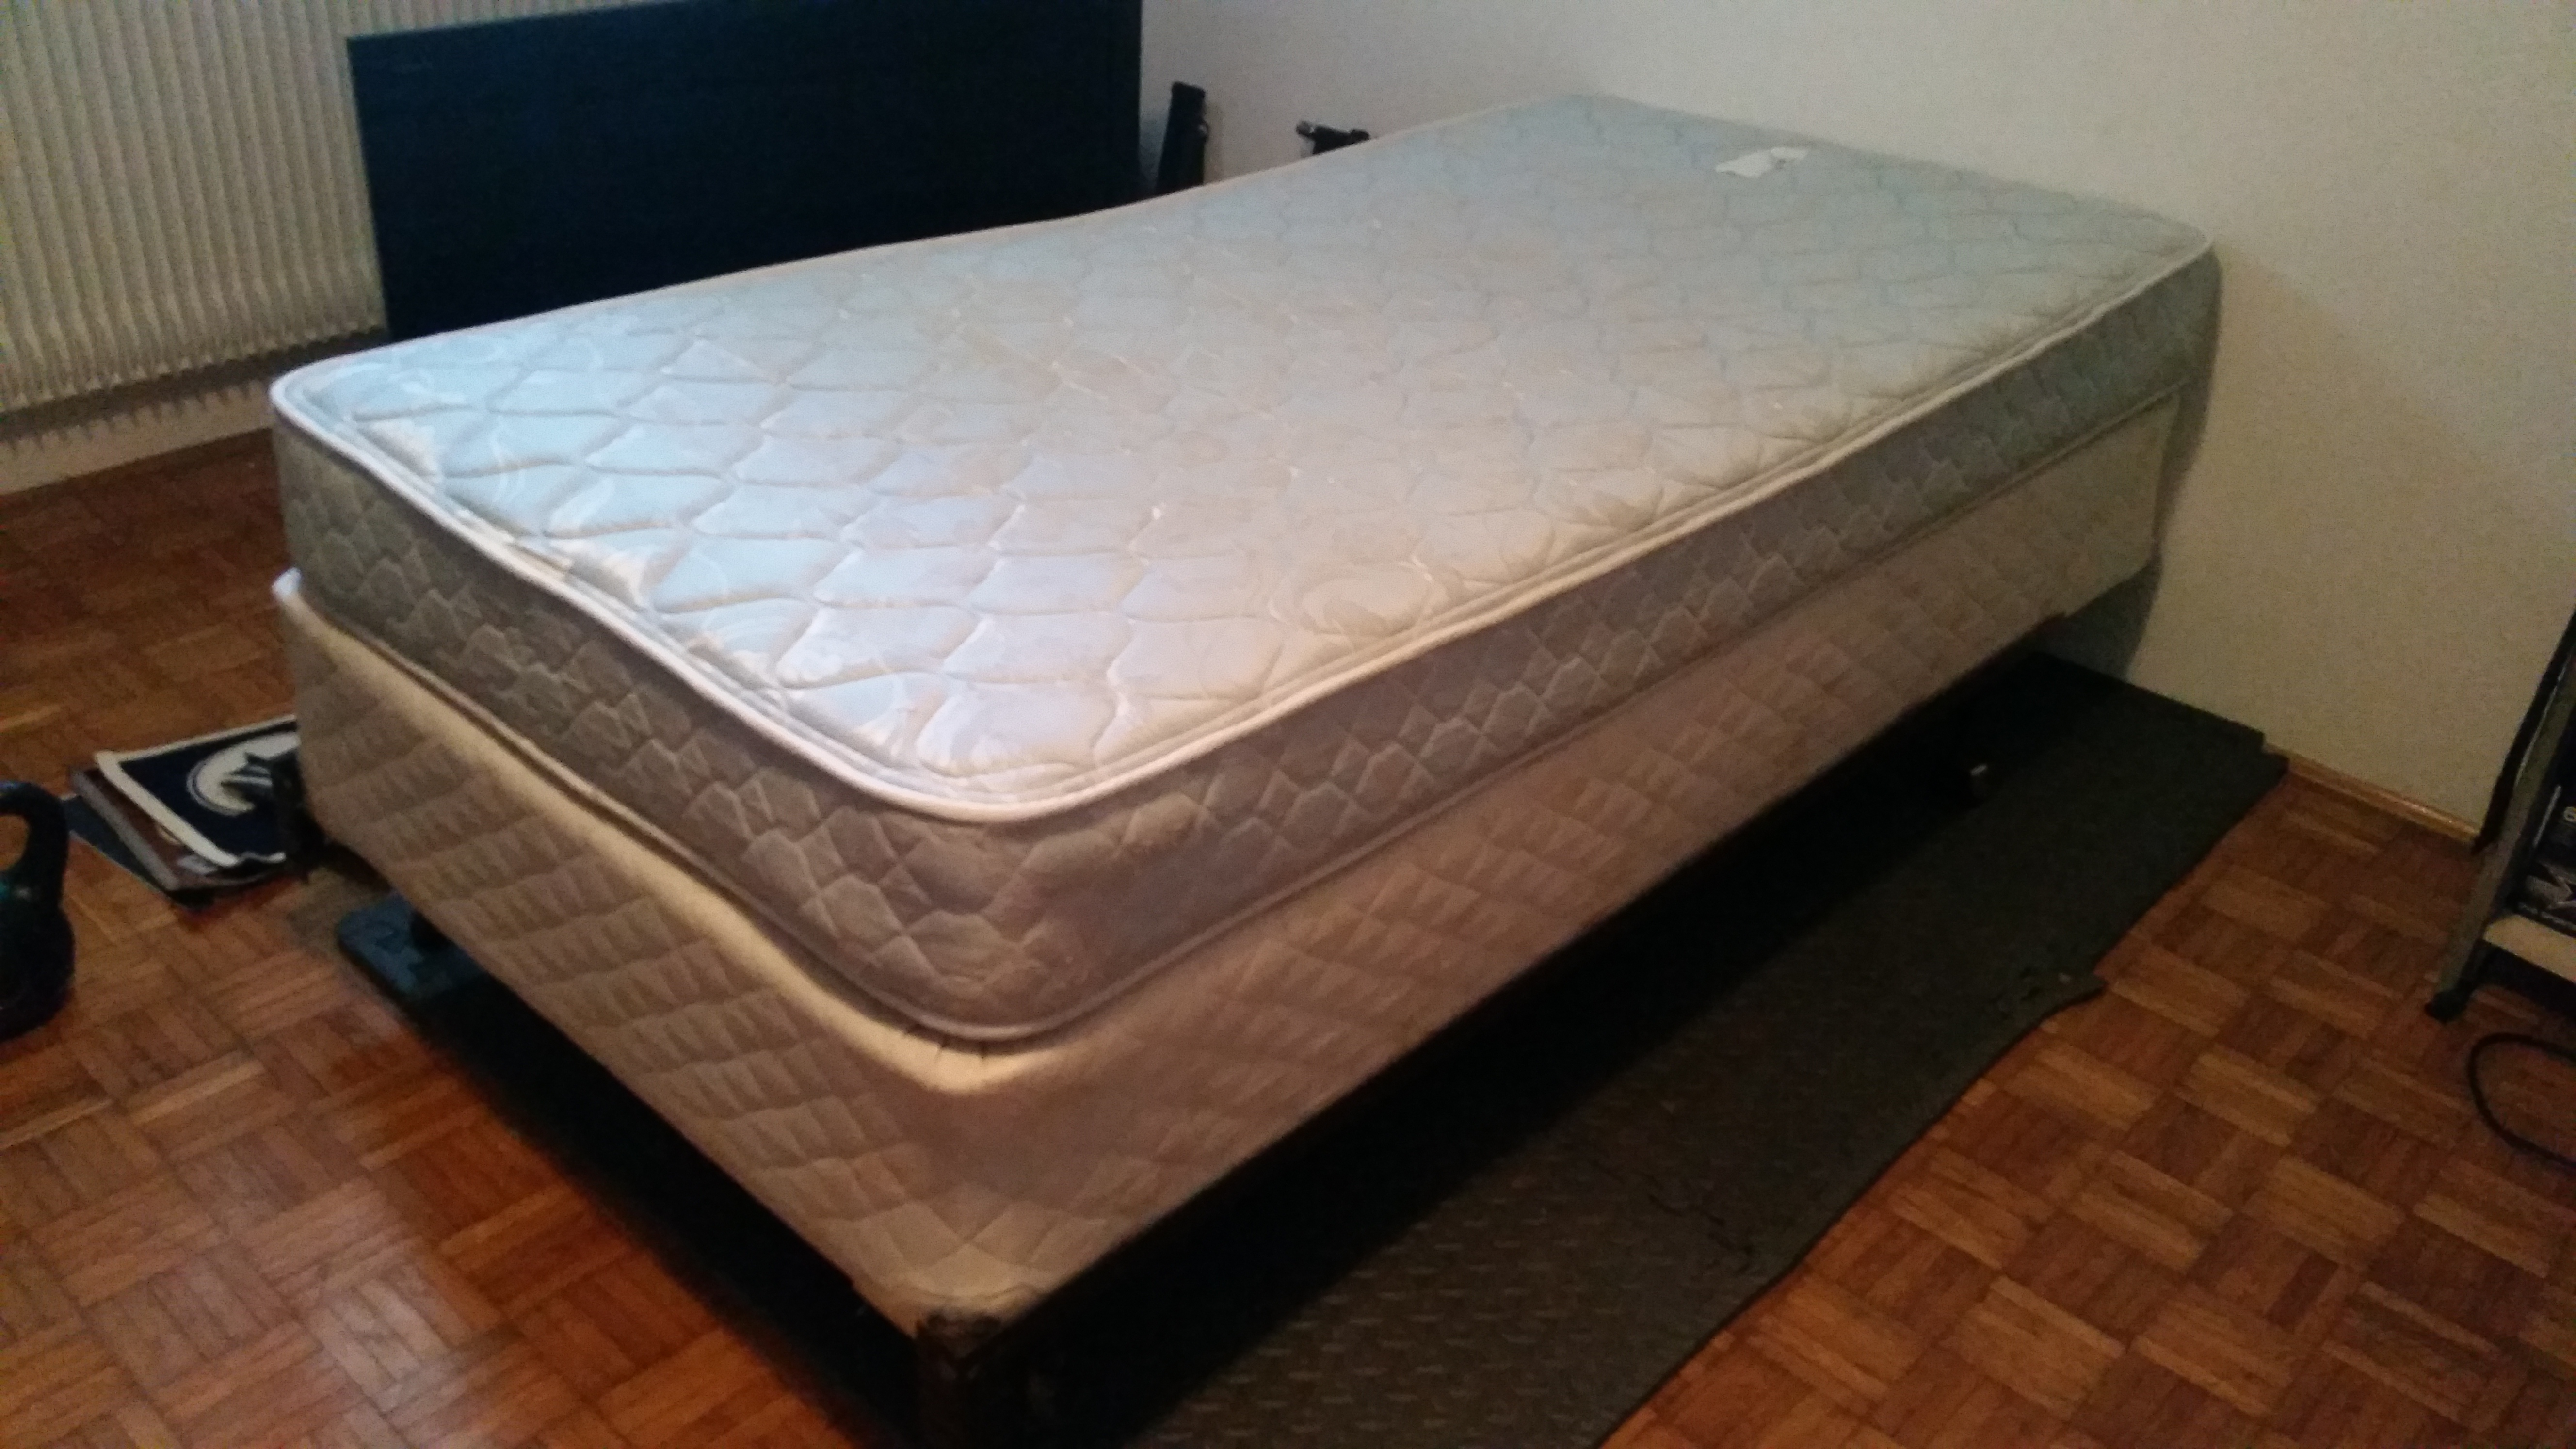 Twin sized mattress, box spring, and metal bed frame